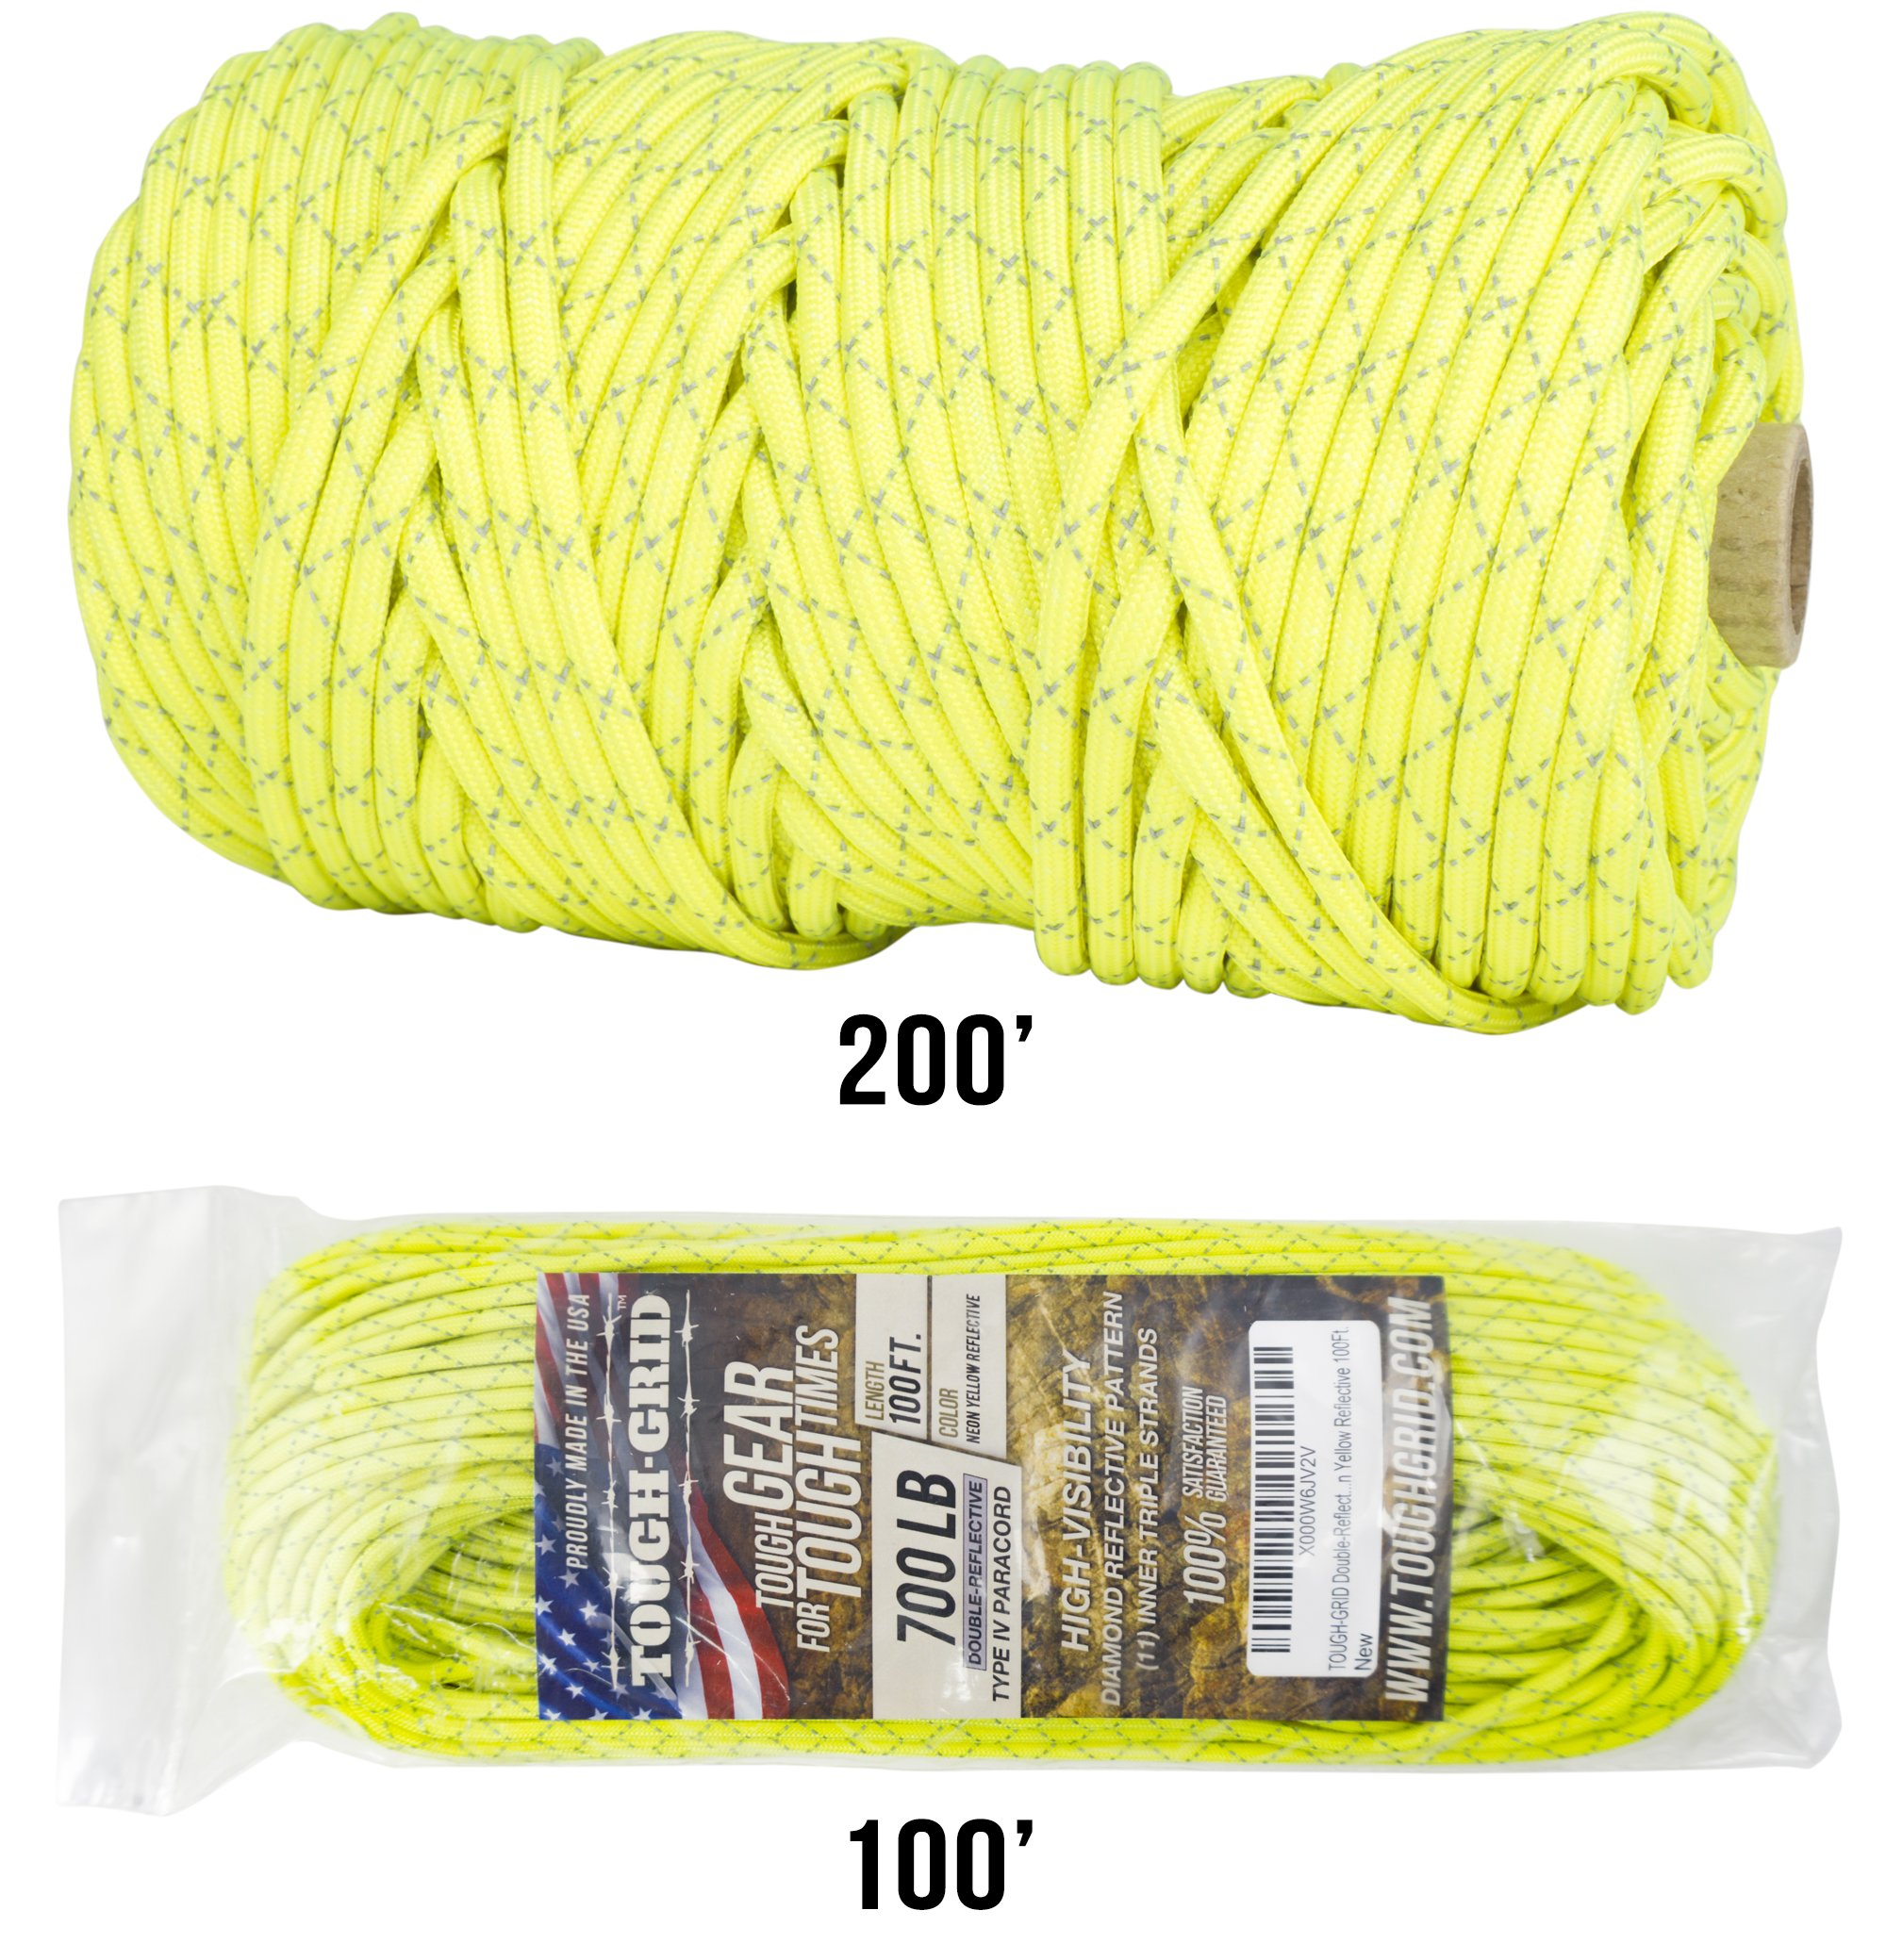 TOUGH-GRID New 700lb Double-Reflective Paracord/Parachute Cord - 2 Vibrant Retro-Reflective Strands for The Ultimate High-Visibility Cord - 100% Nylon - Made in USA - 200Ft. Neon Yellow Reflective by TOUGH-GRID (Image #1)